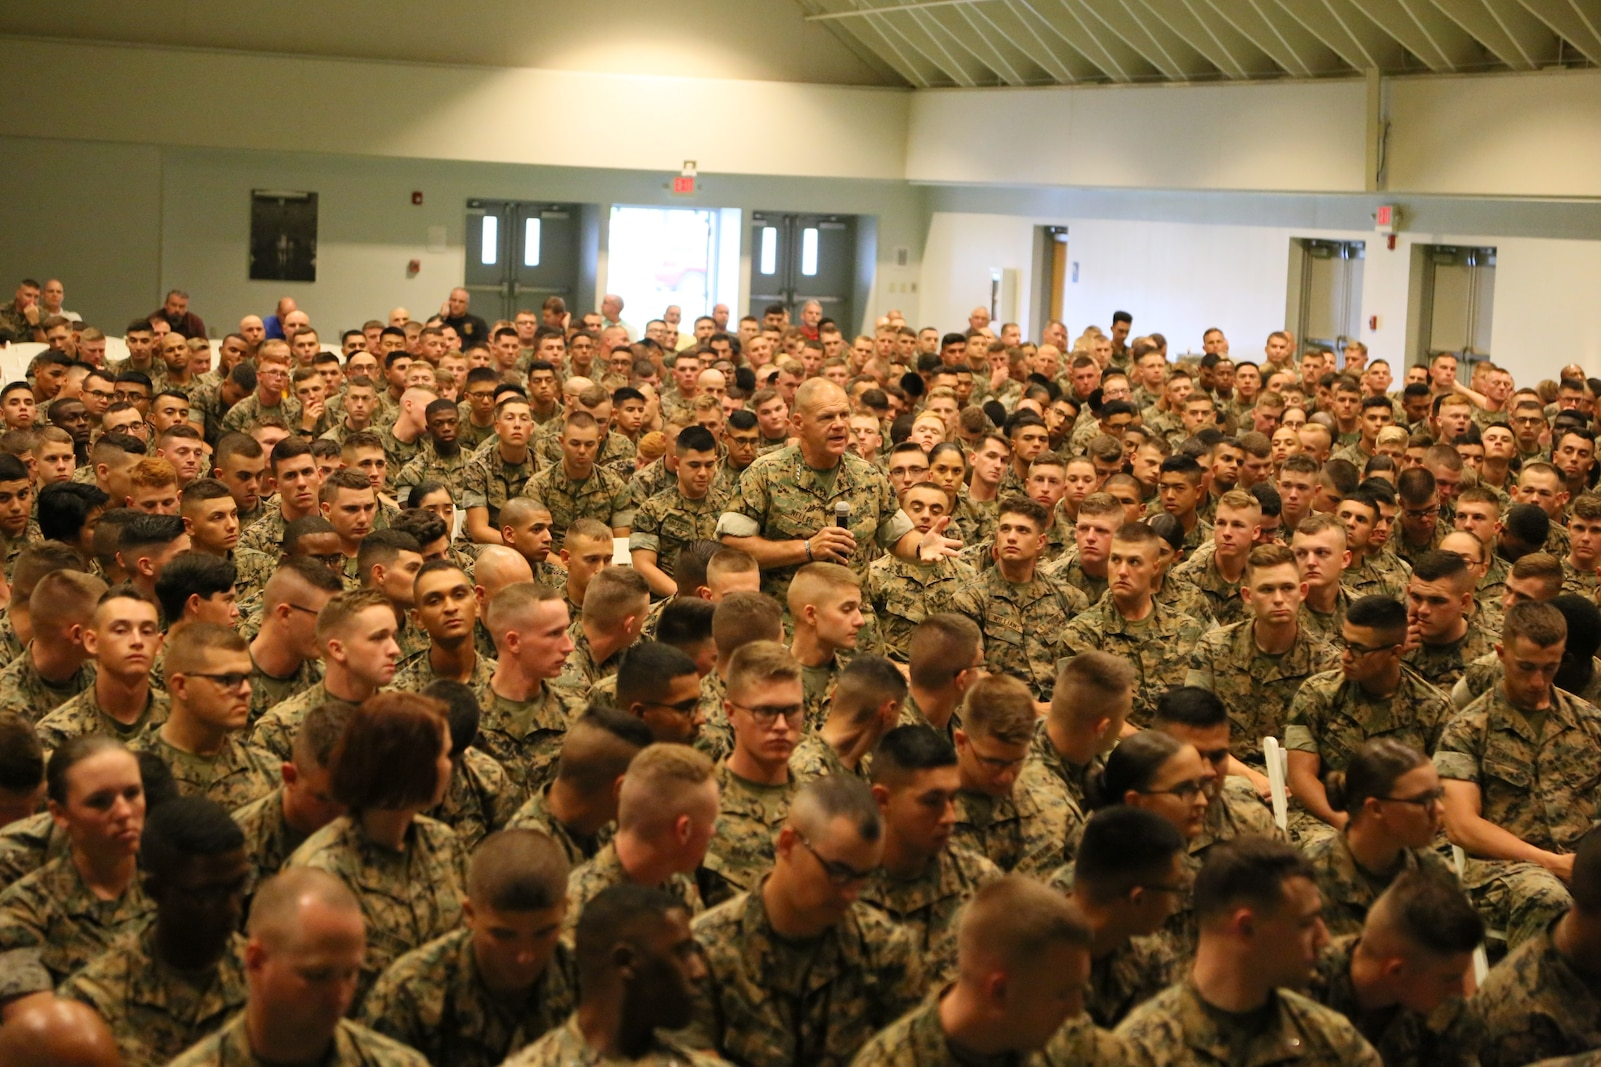 General Robert B. Neller, the 37th Commandant of the Marine Corps speaks to permanent personal and student population Marines on Fort Leonard Wood, MO August 28th, 2017. During the speech, General Neller reminds Marines that our Corps must be ready to execute when our Nation calls. (U.S. Marine Corps photo by Sgt. Teng Yang)